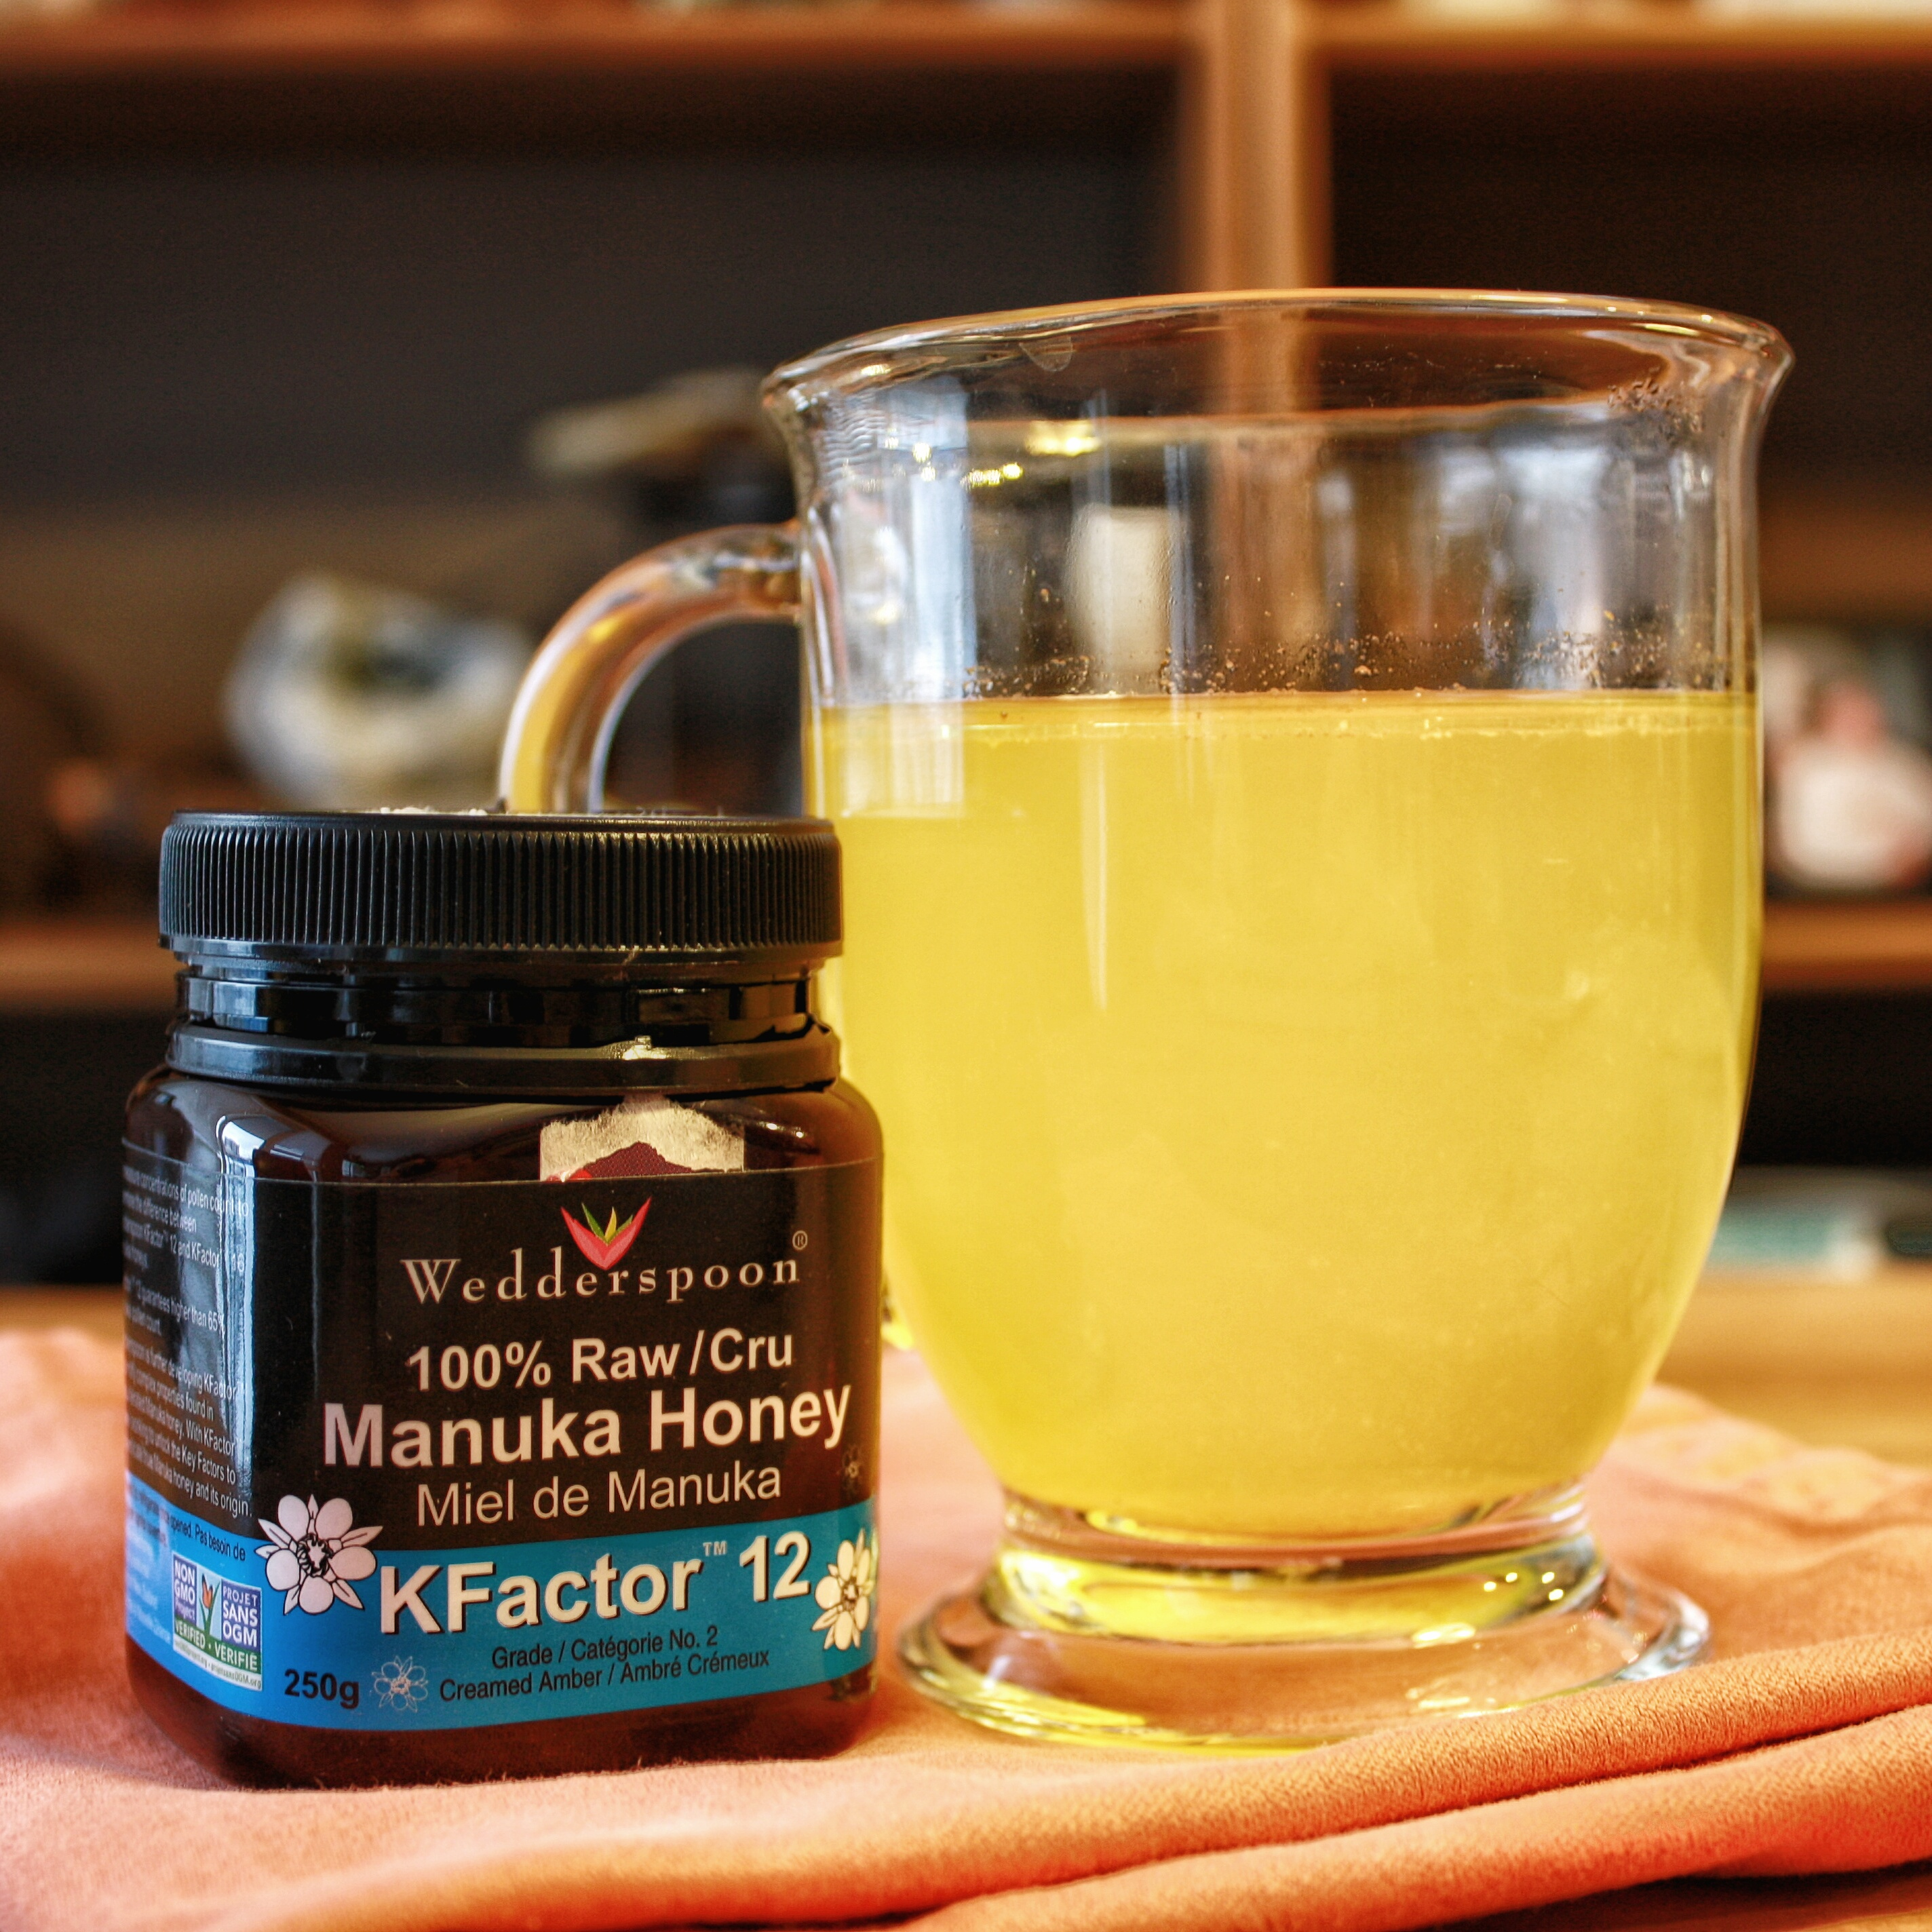 a hot mug of immunity elixir and manuka honey